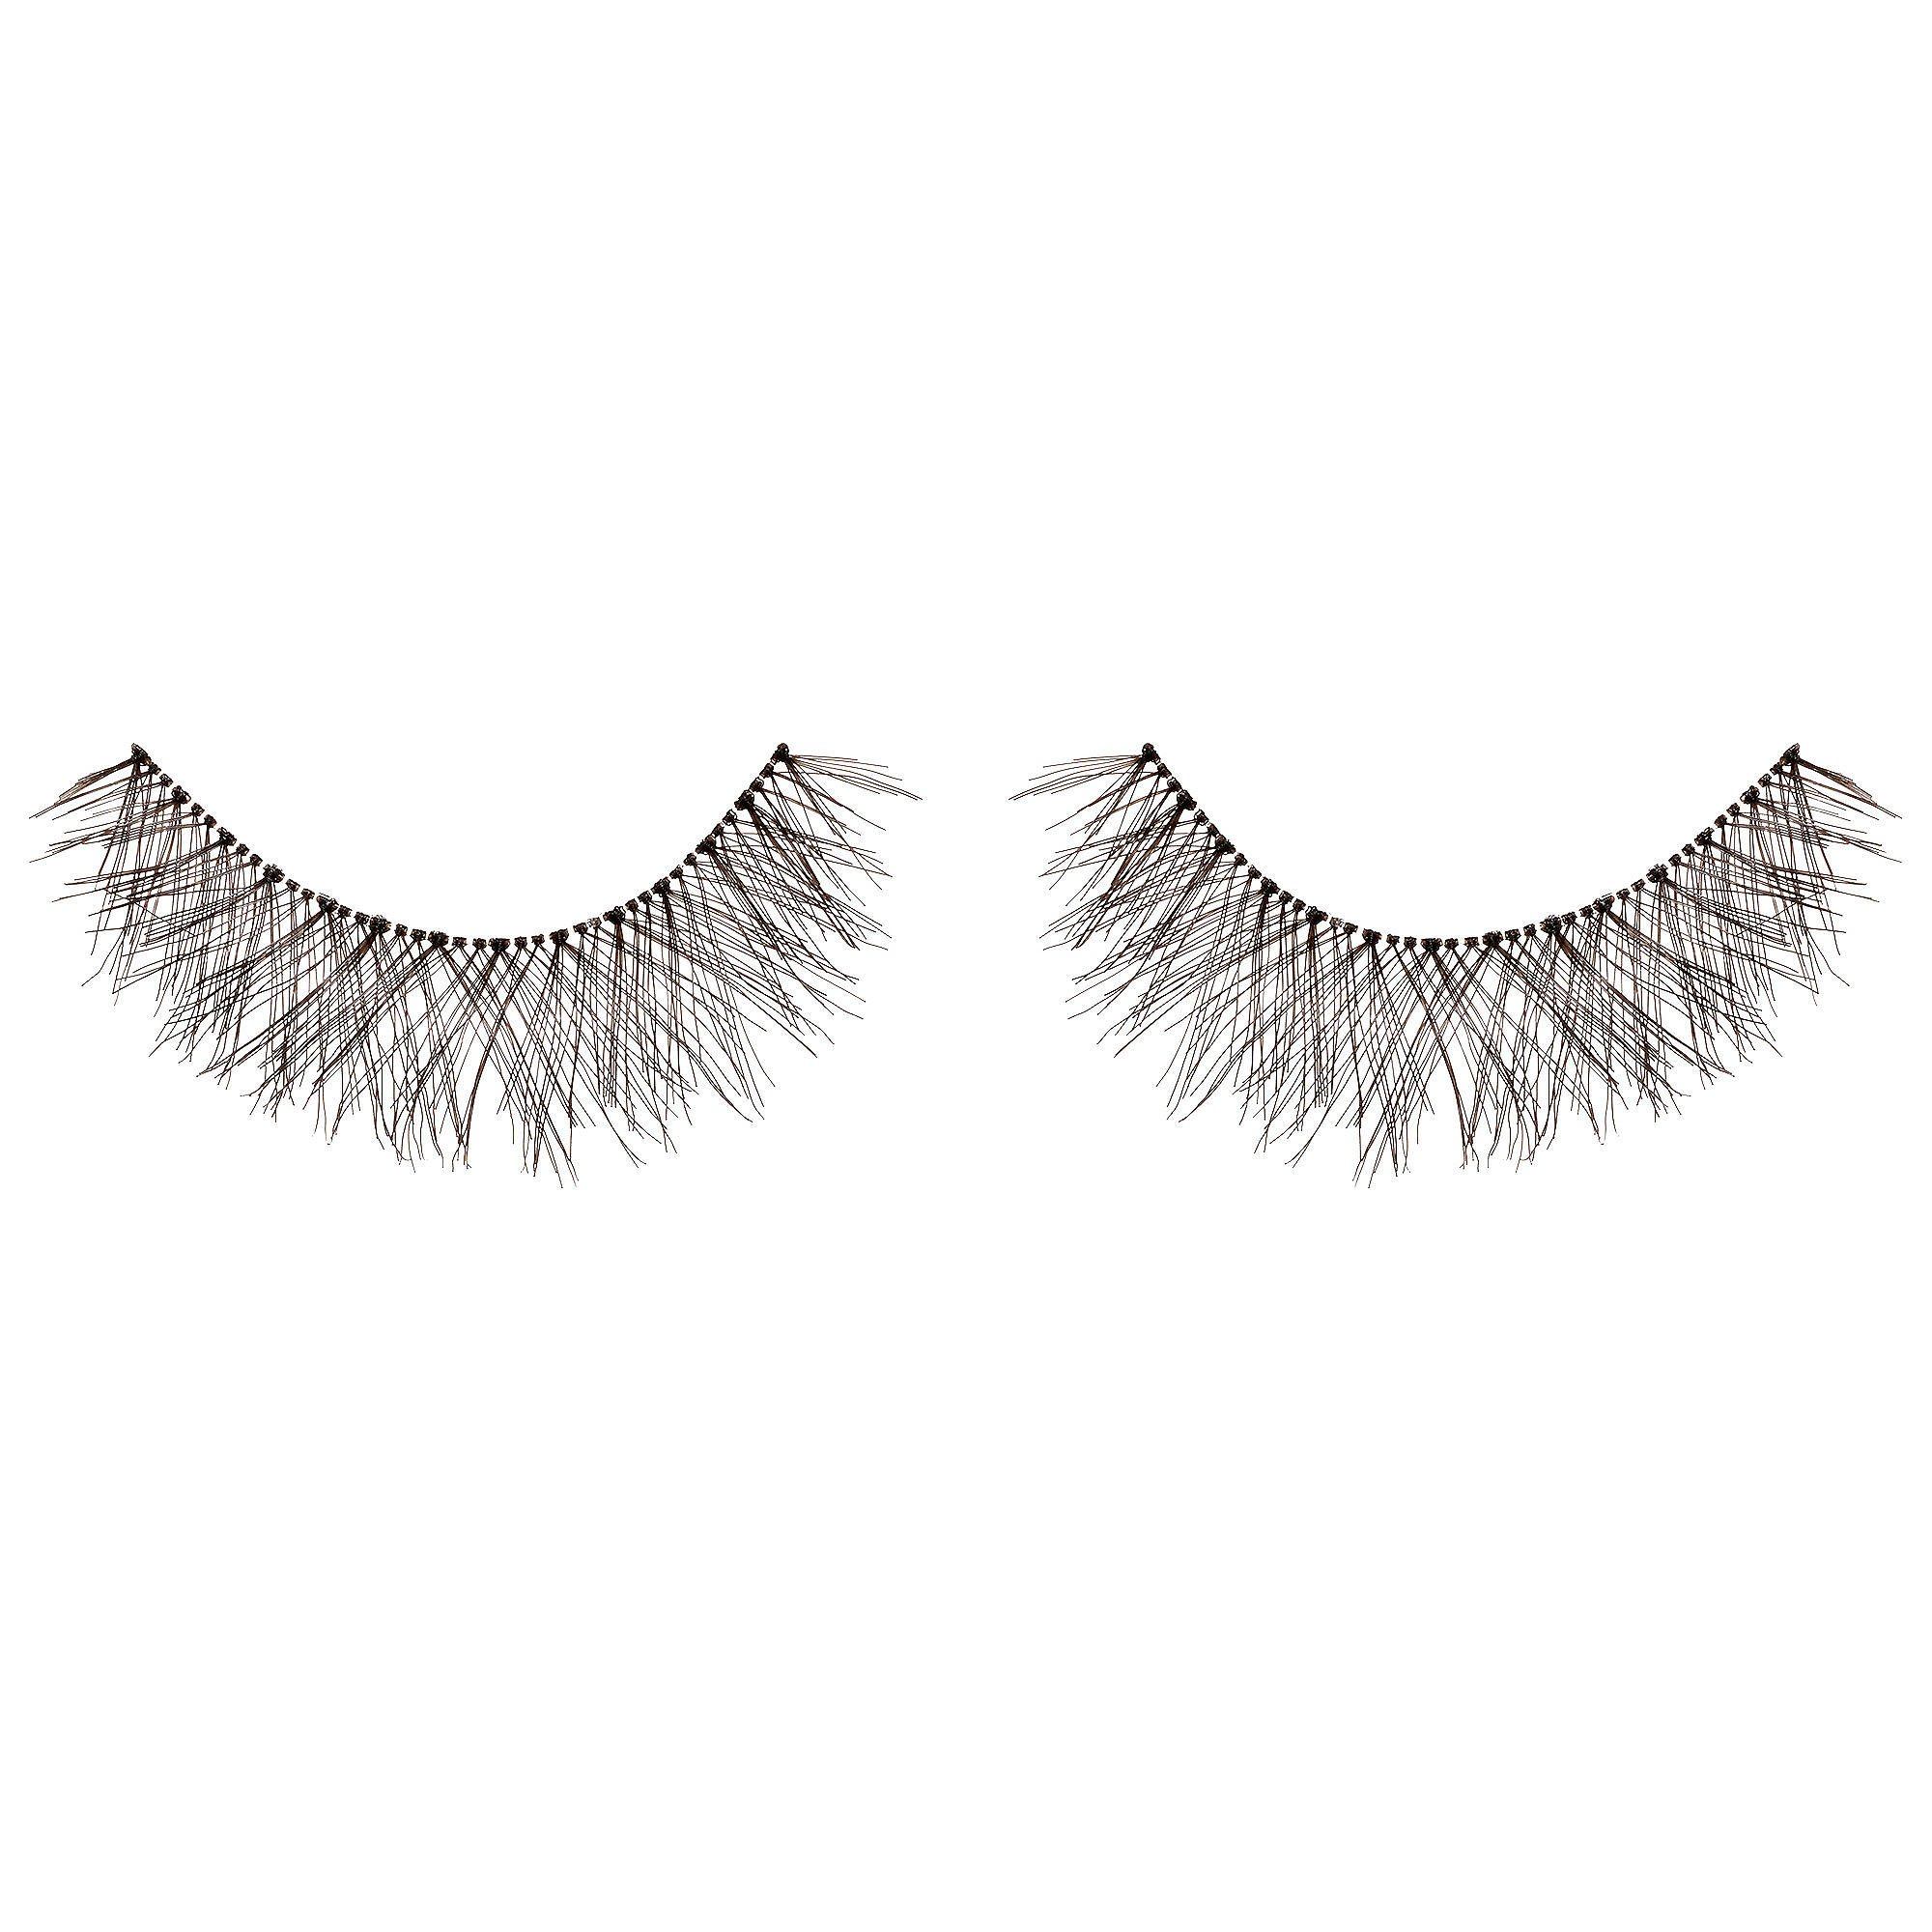 MAKE UP FOR EVER LASH SHOW FLASE LASHES (N-102)